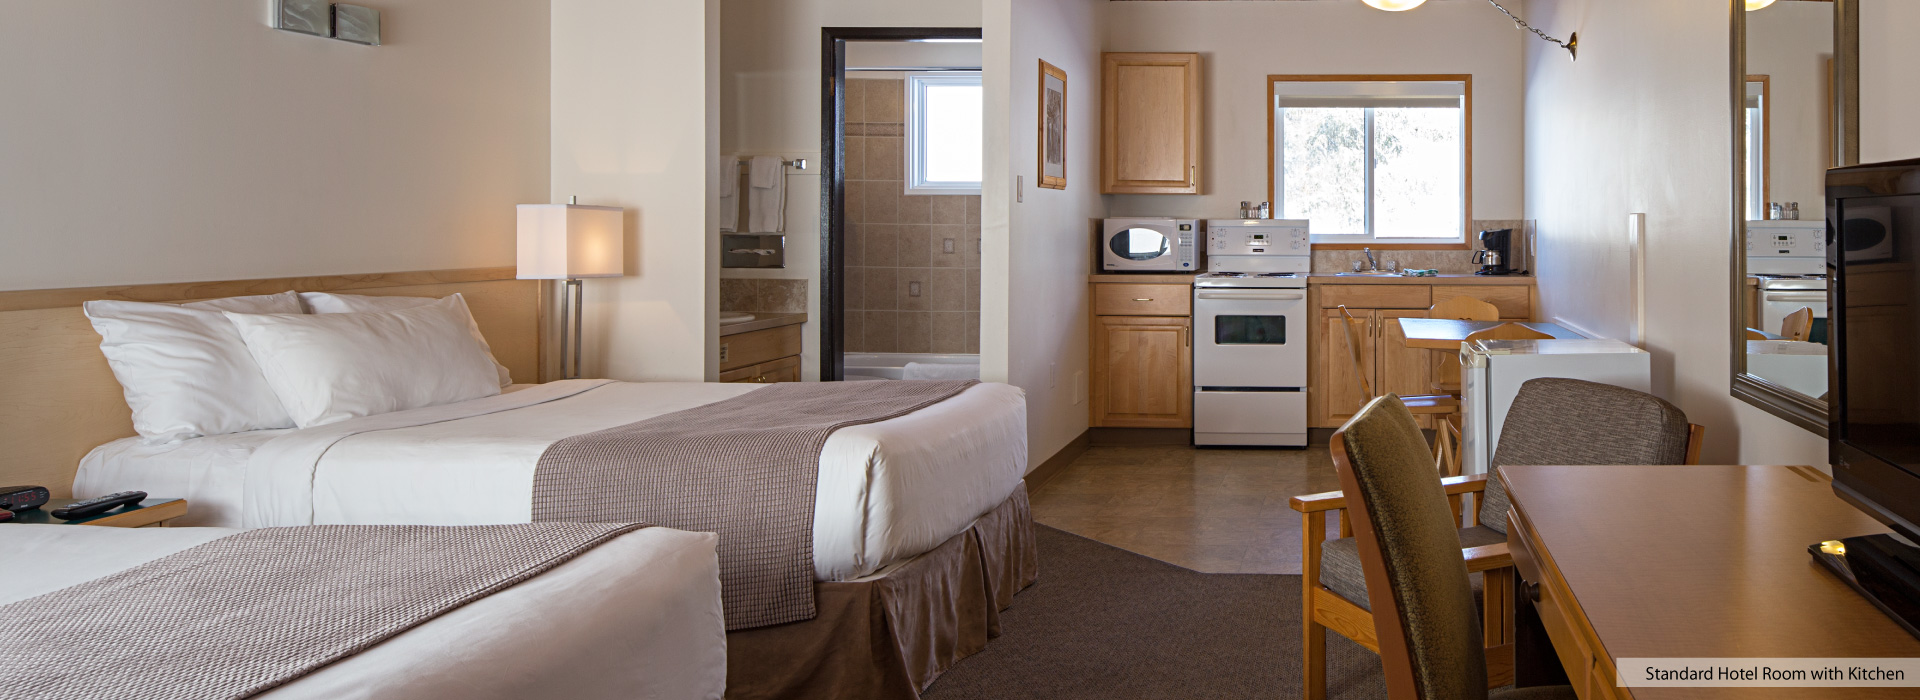 Kitchen Room Bedroom Hotel Room With Kitchen At The Rocky Mountain Ski Lodge In Canmore